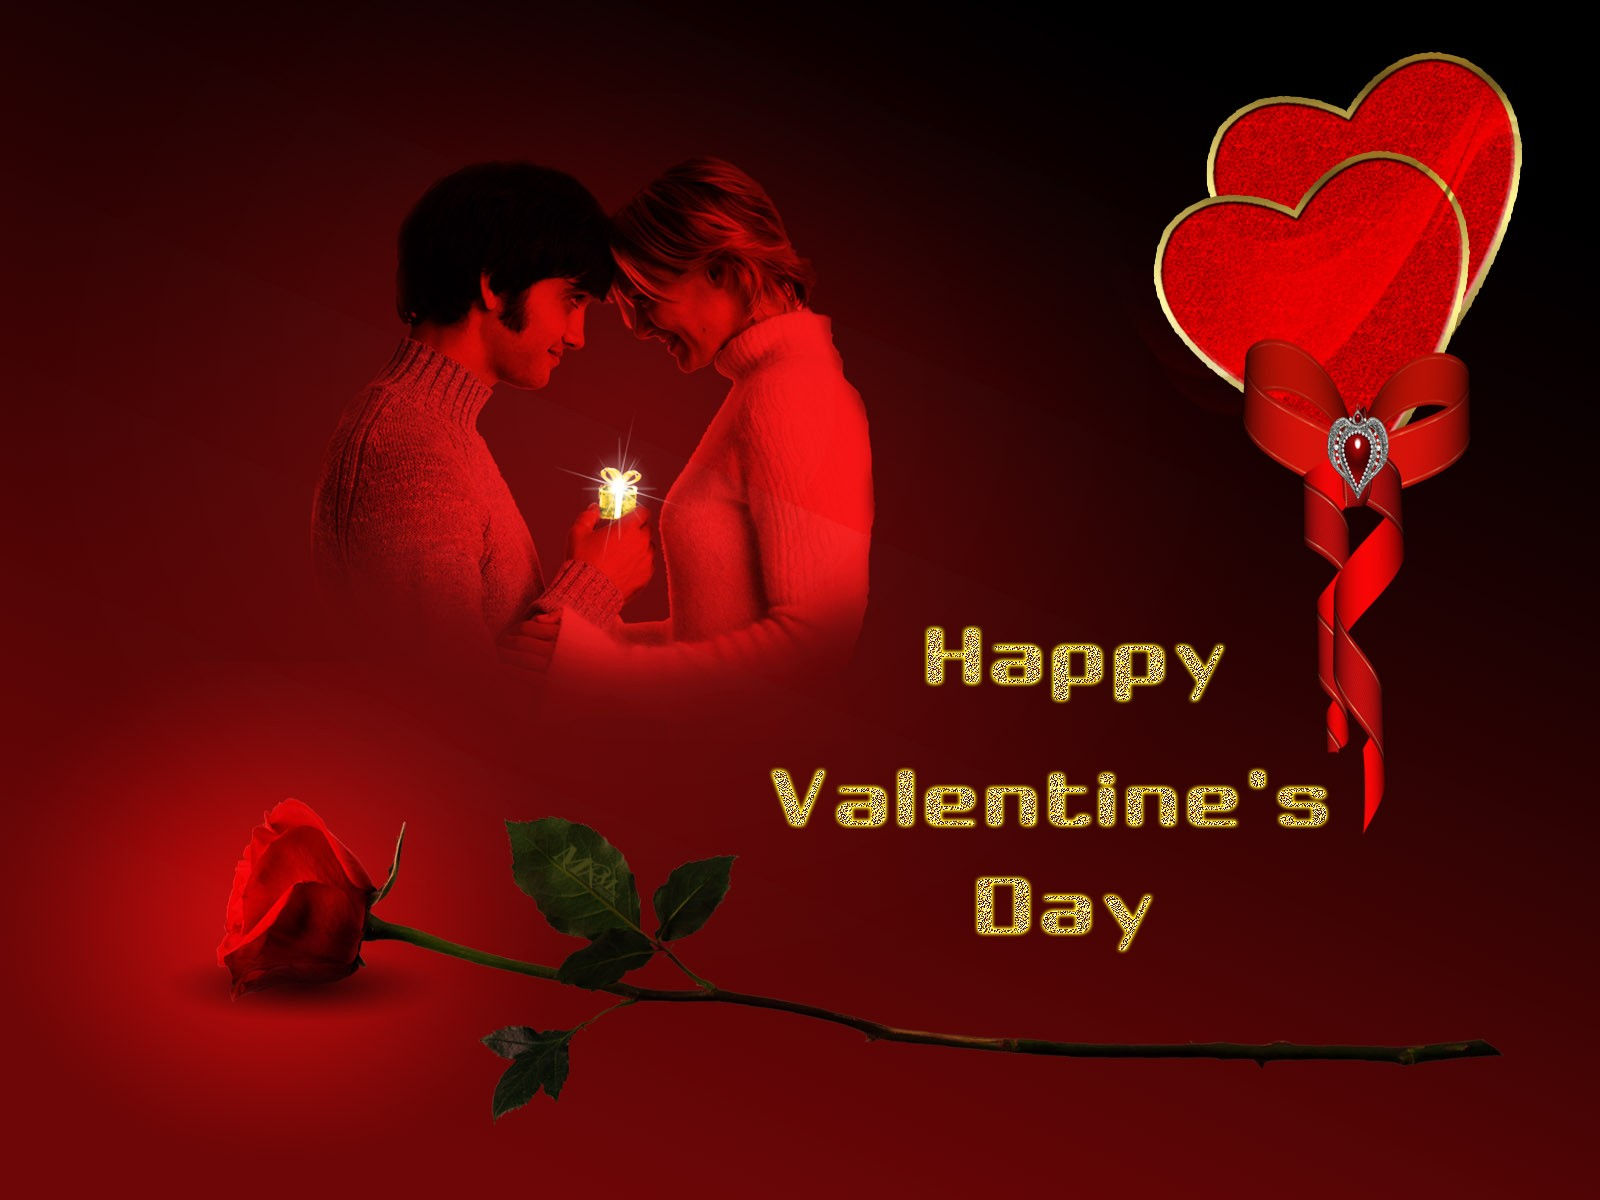 Happy Valentines Day Wallpapers 1600x1200